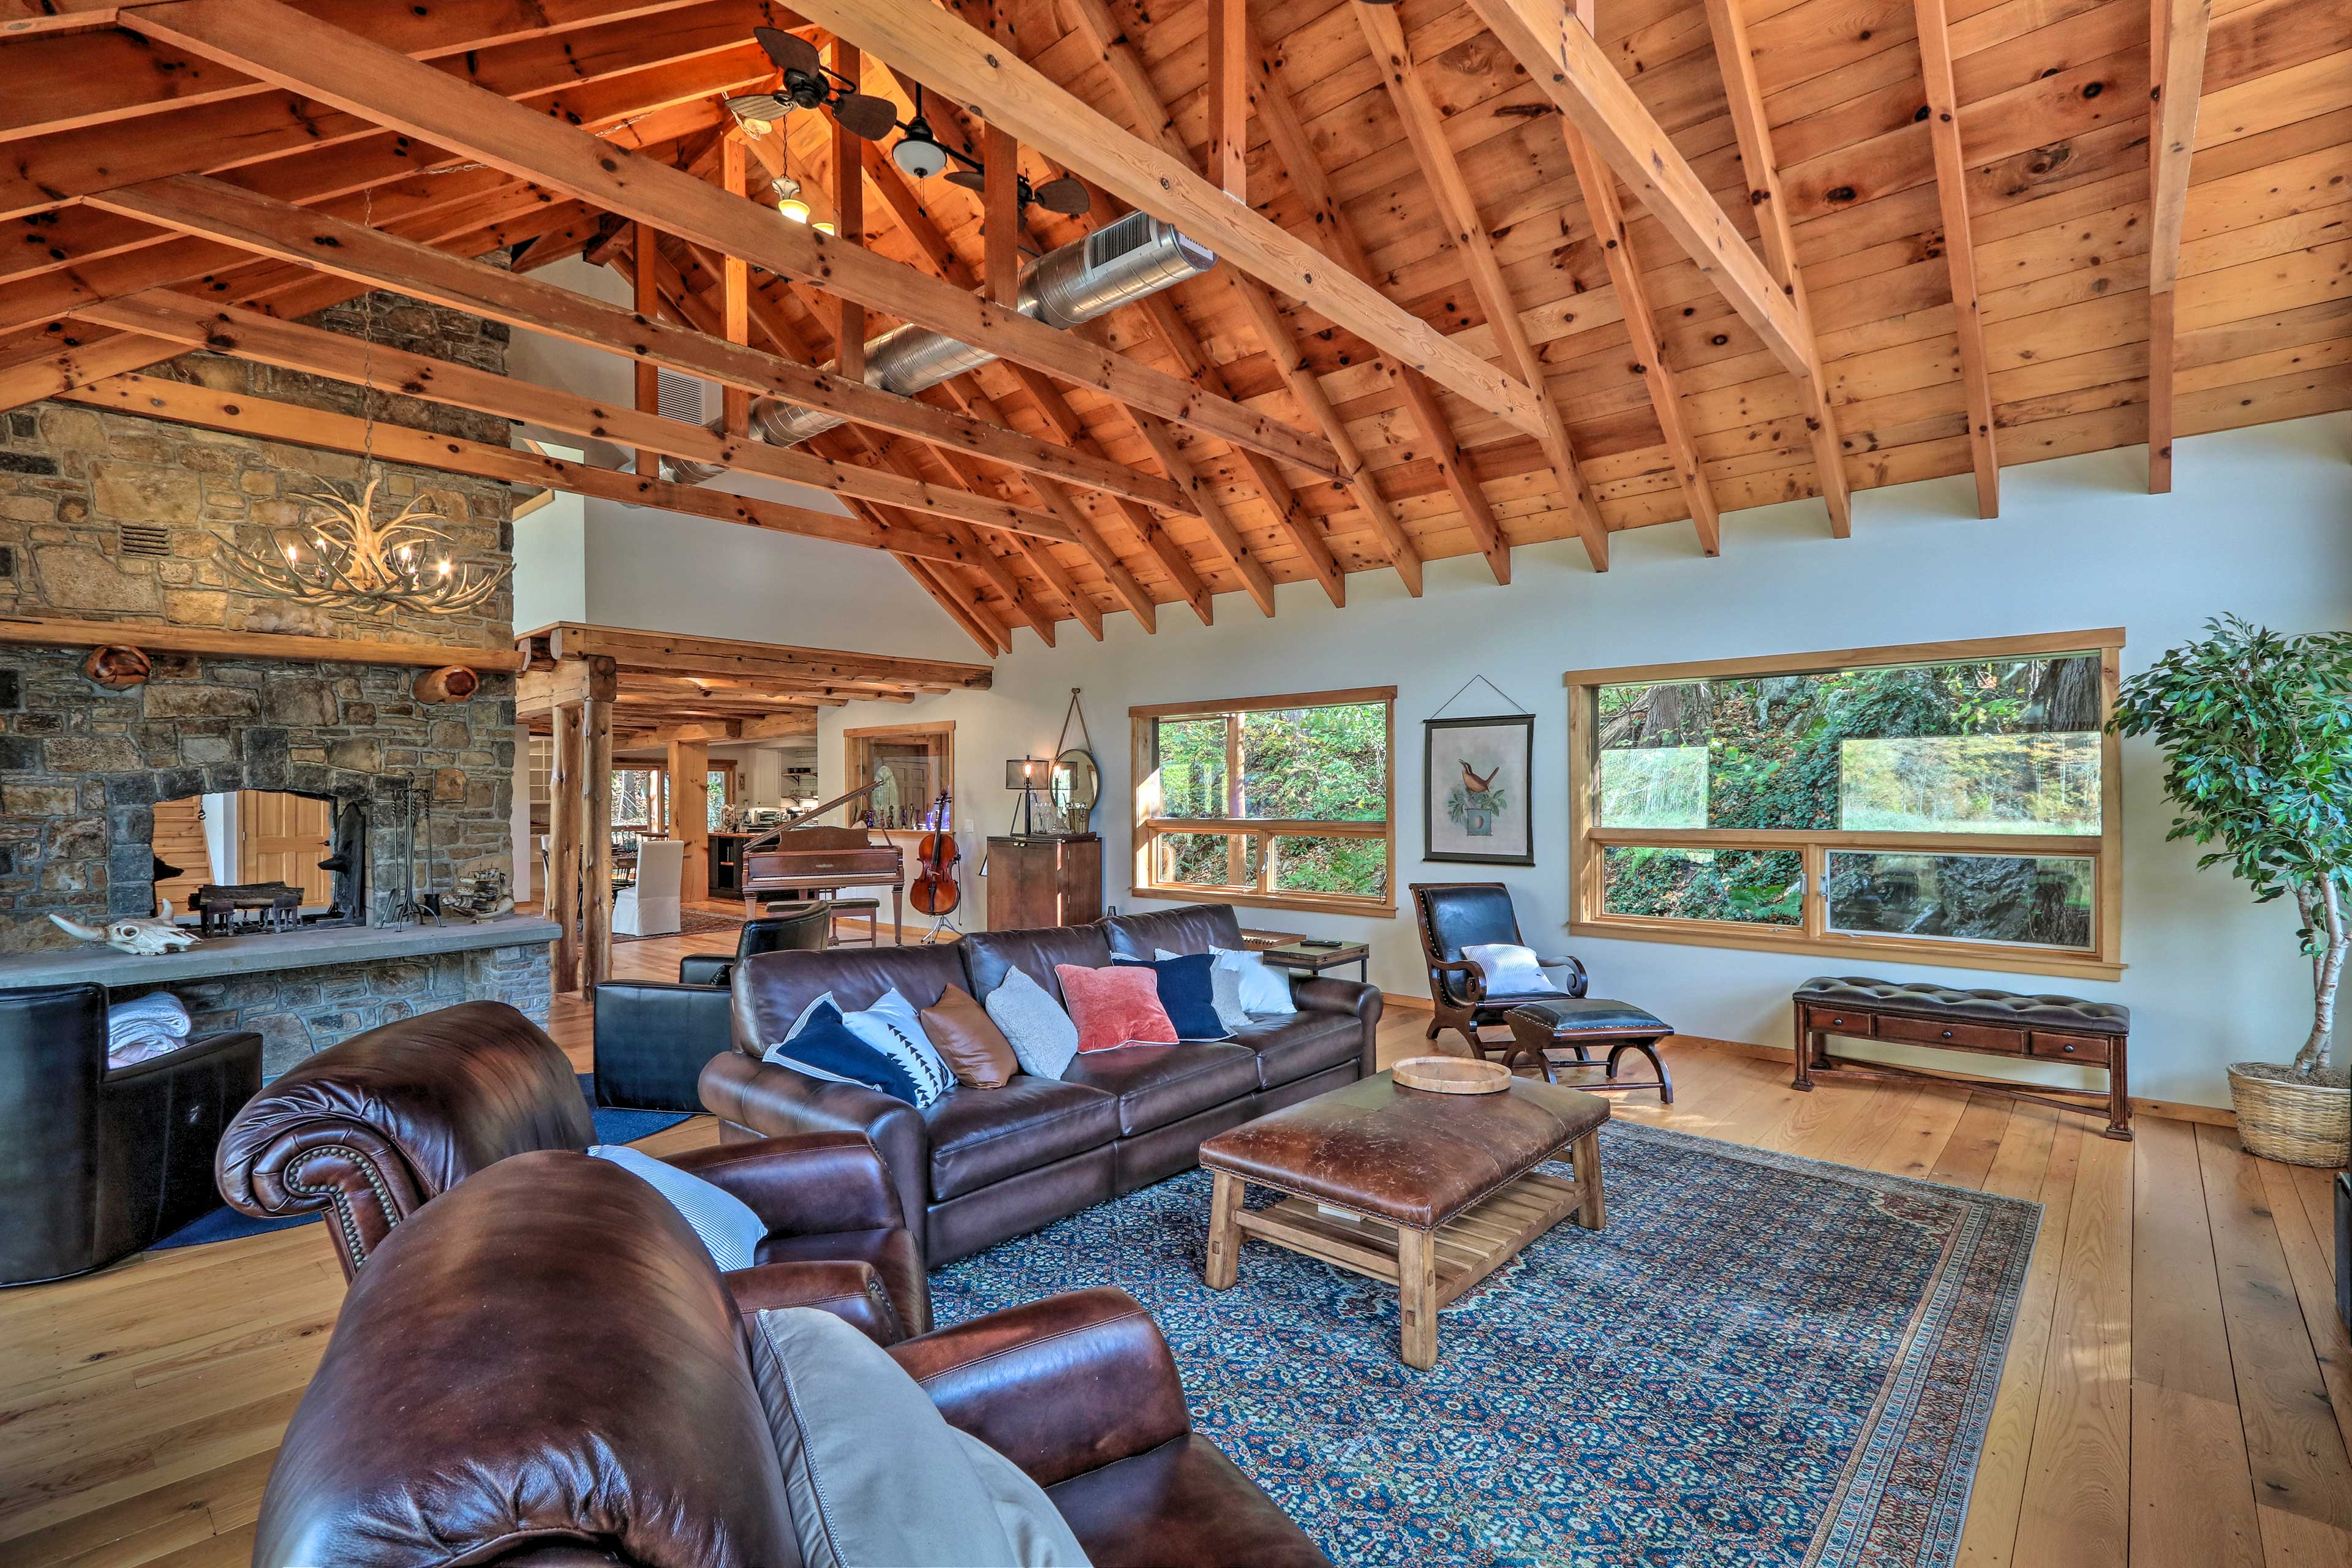 There's plenty of room for your group of 8 in this living room!